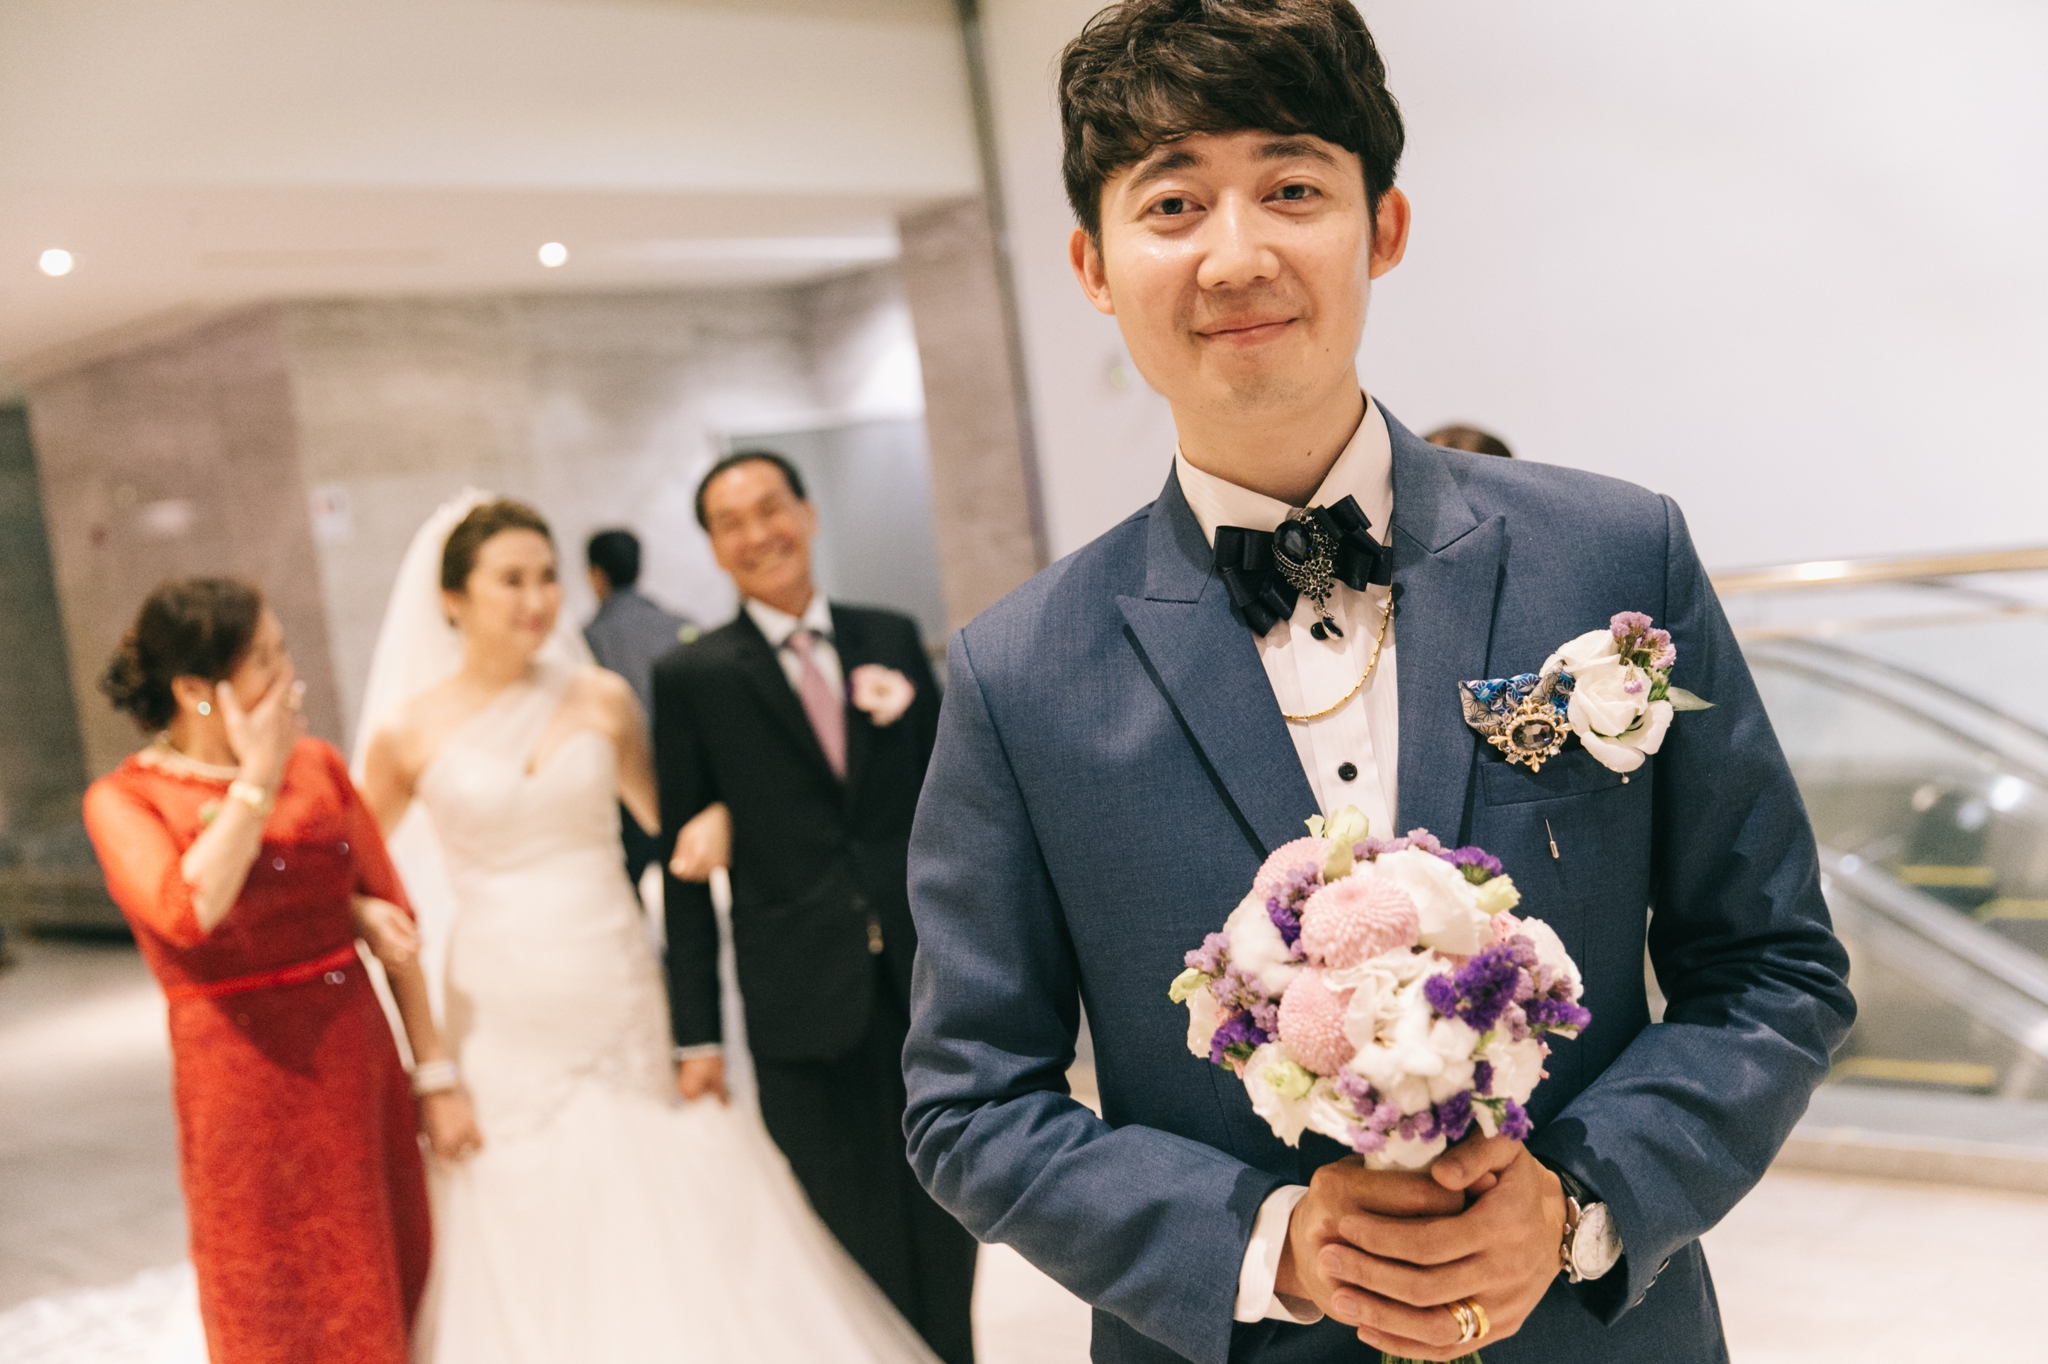 Keddy+Richard-wedding-新莊頤品飯店-172.jpg